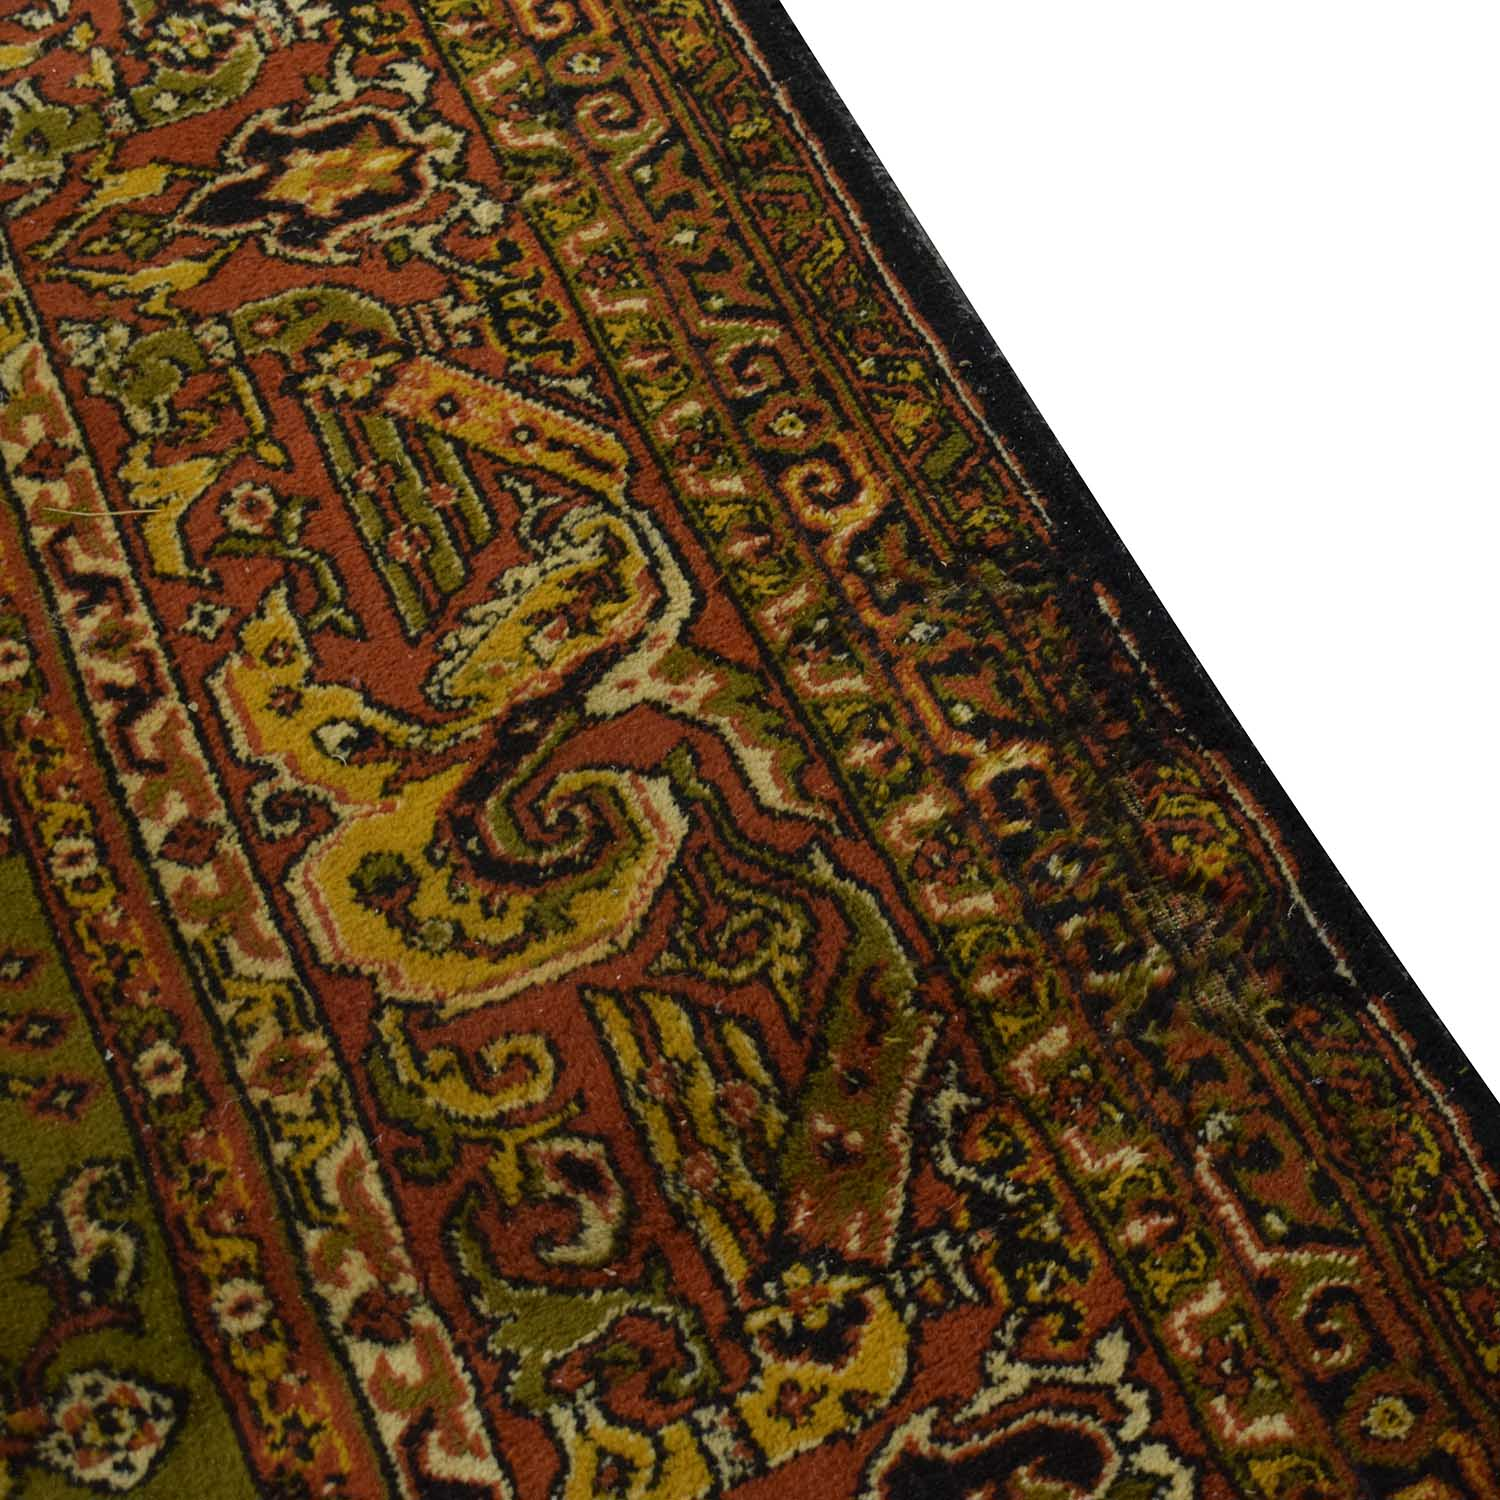 Antique Persian Wool Rug on sale